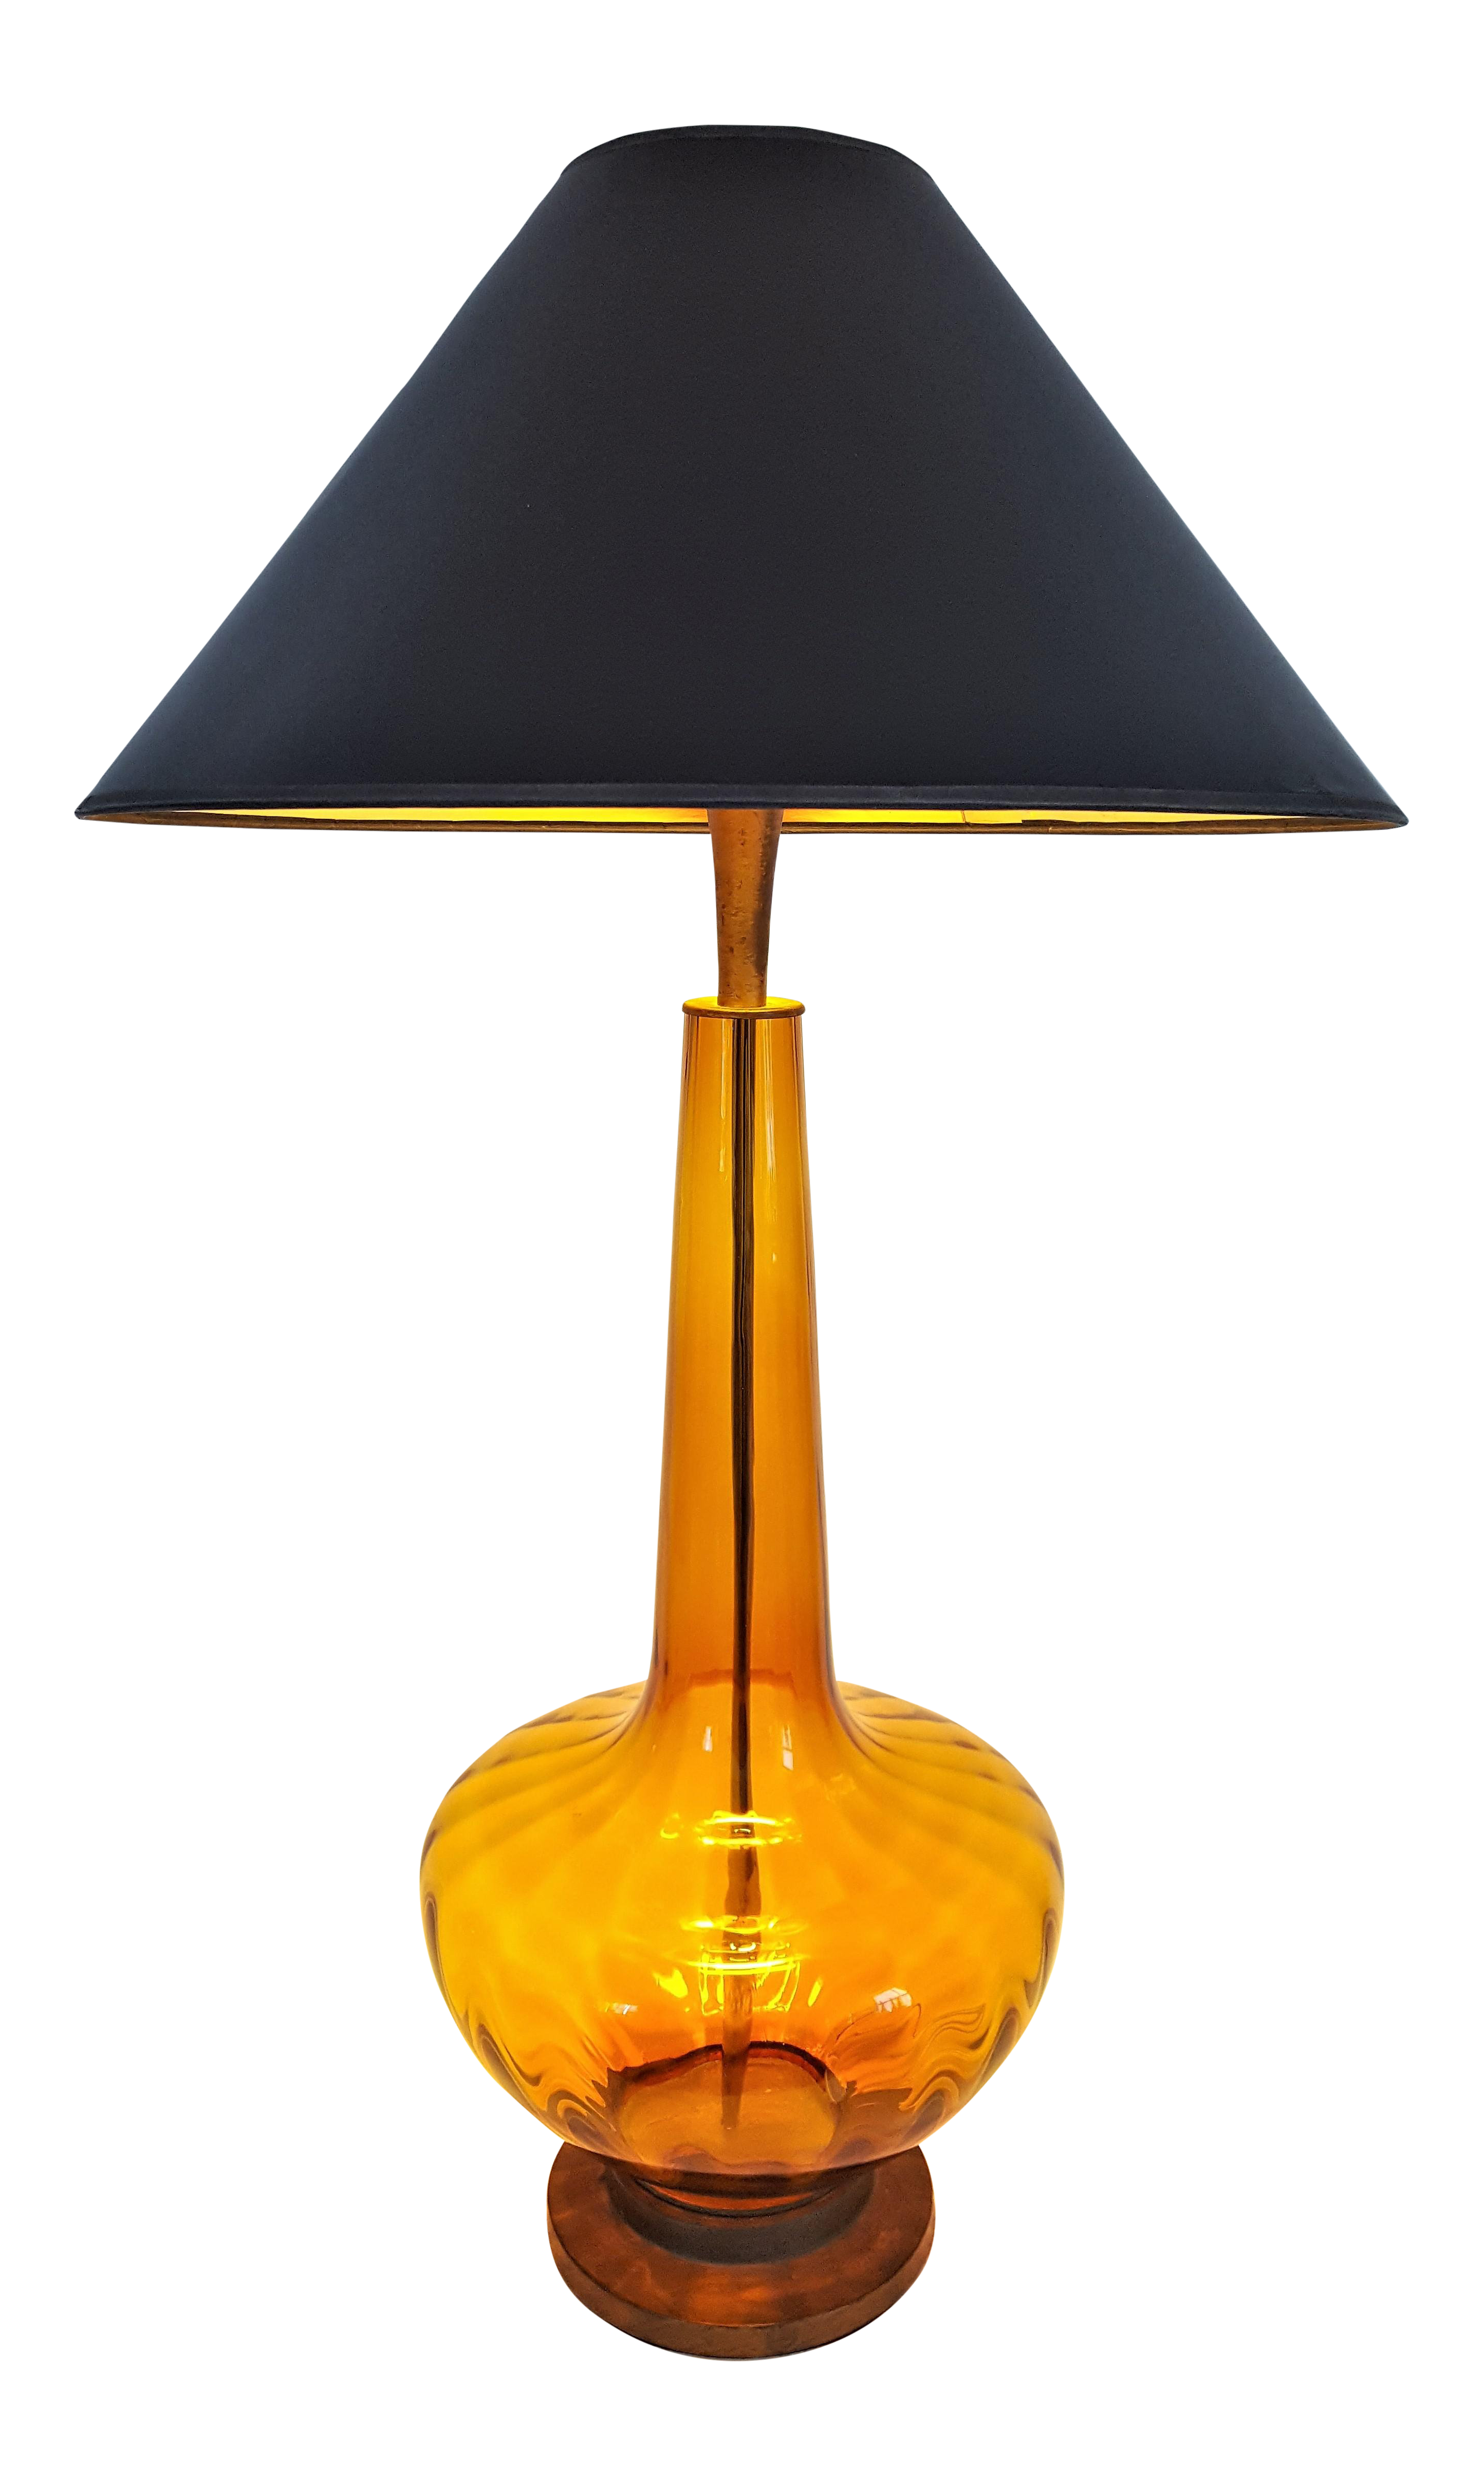 Gentil Large 1950u0027s Vintage Murano Amber Glass Table Lamp Italy Italian Mid  Century Modern MCM Palm Beach Boho Chic Tropical Amber